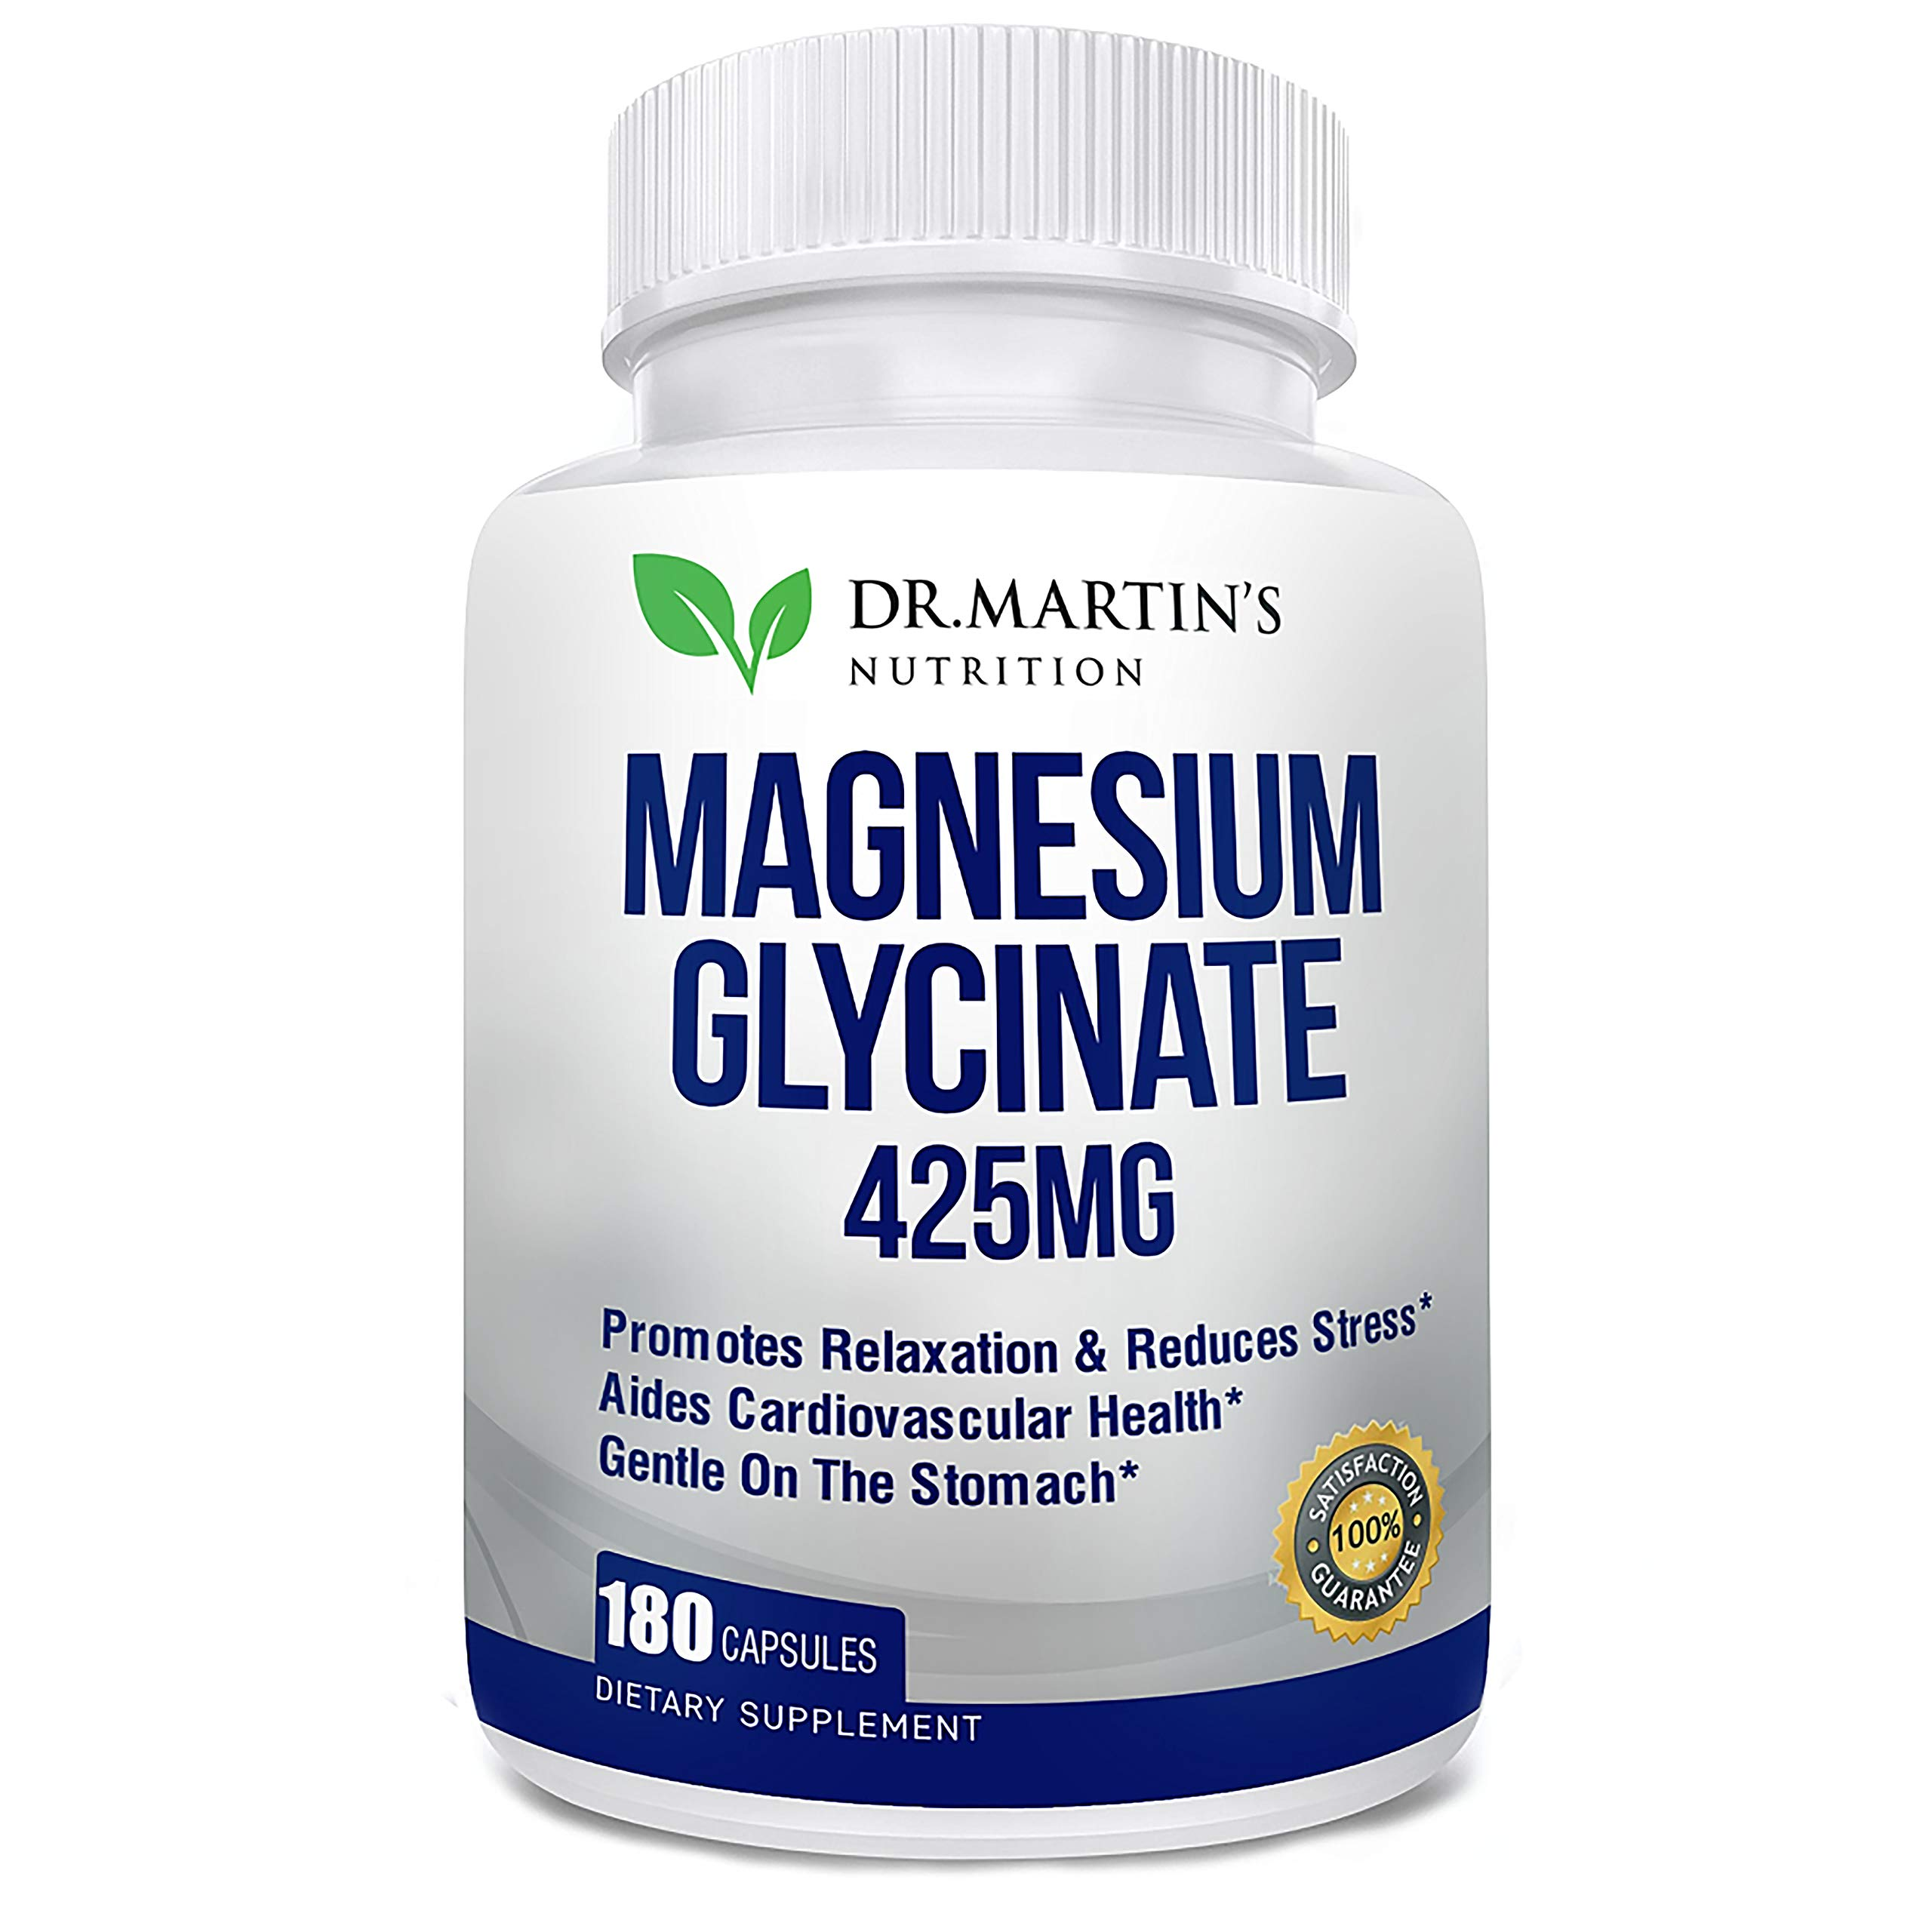 Premium Magnesium Glycinate 425mg - 180 Vegan Capsules - Helps with Stress Relief, Sleep, Muscle Cramps & Healthy Heart |